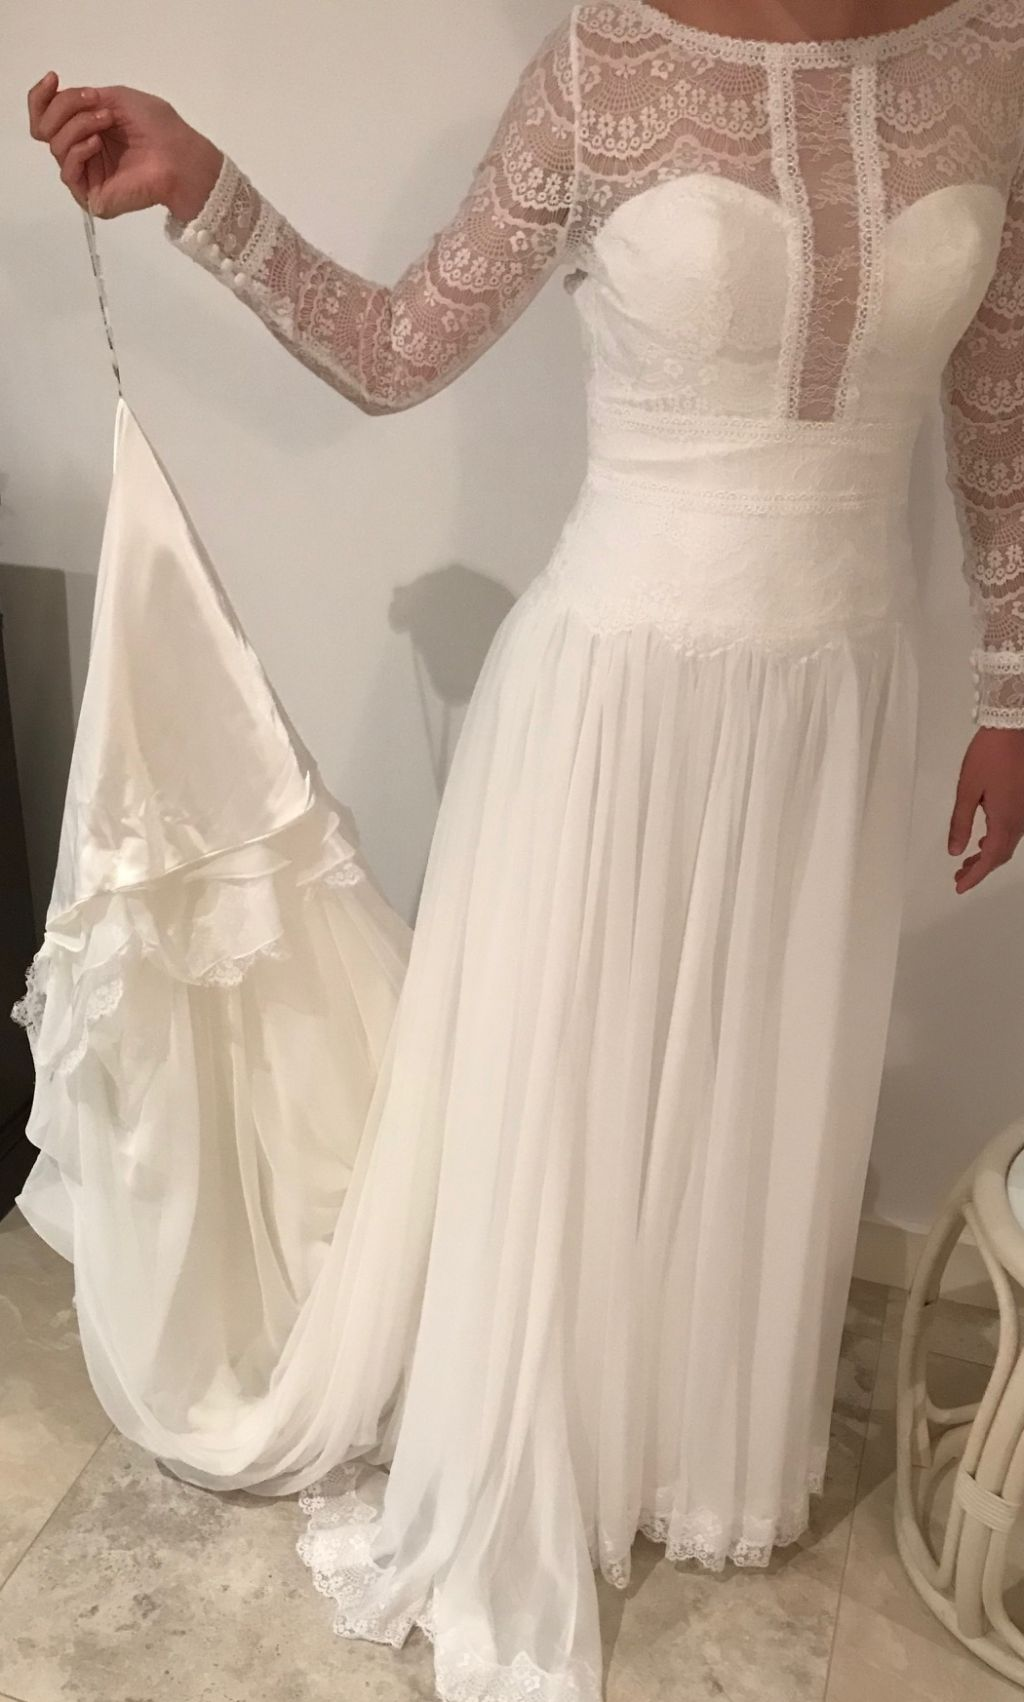 Maggie Sottero Deirdre 1900 Size 8 Used Wedding Dresses